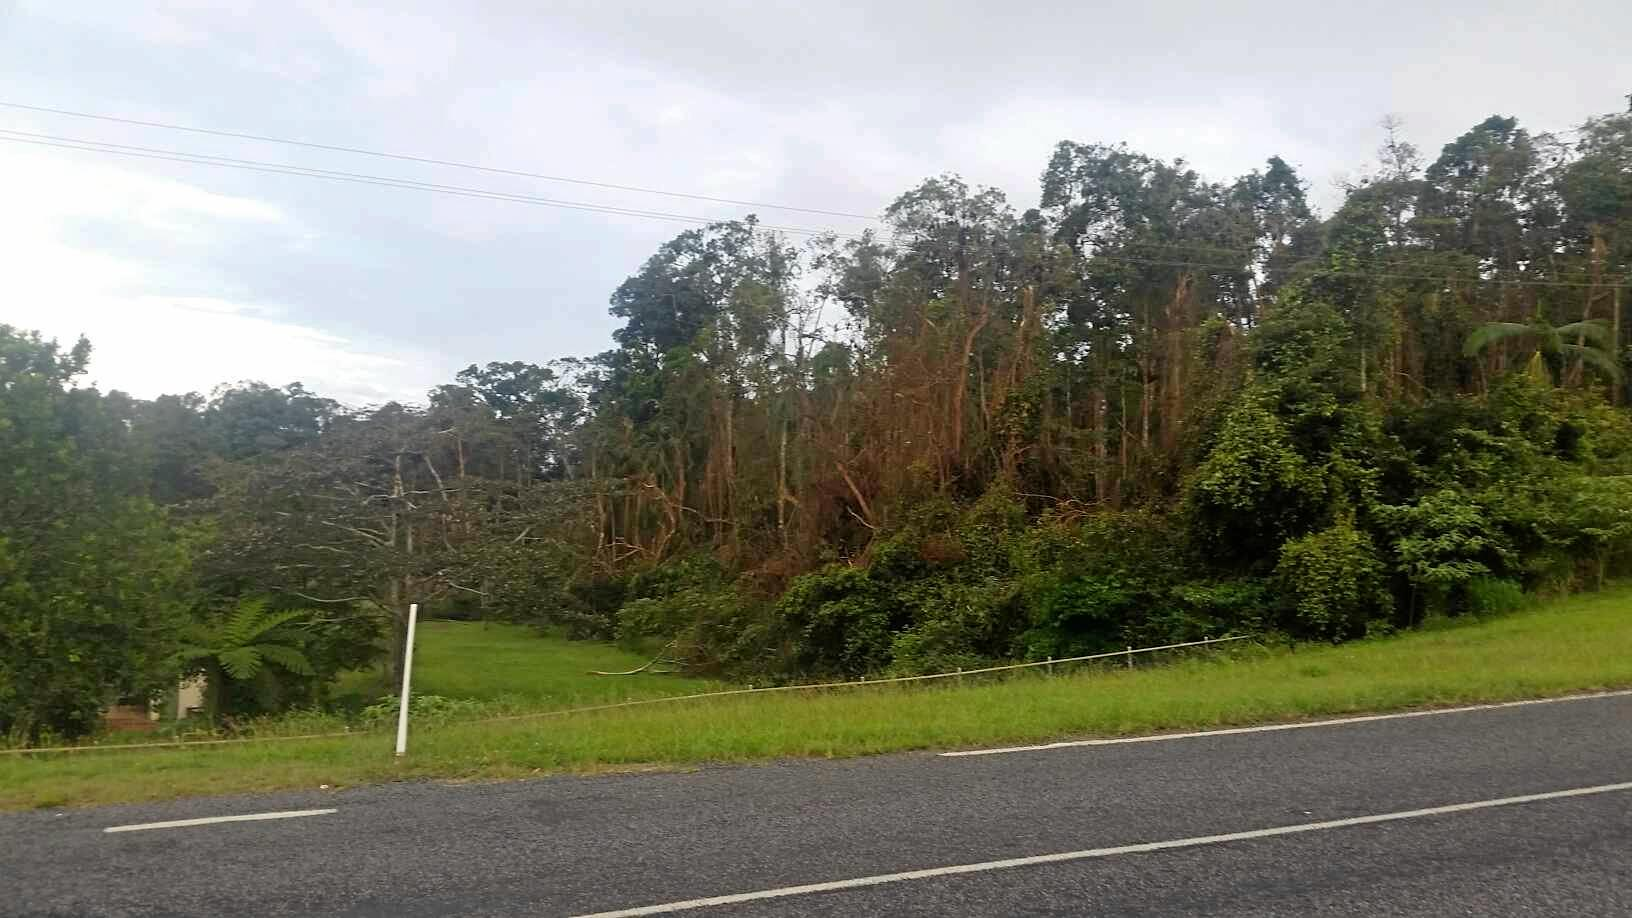 One of two bat colonies close to the Eungella State Primary School that are stripping trees and concerning parents.